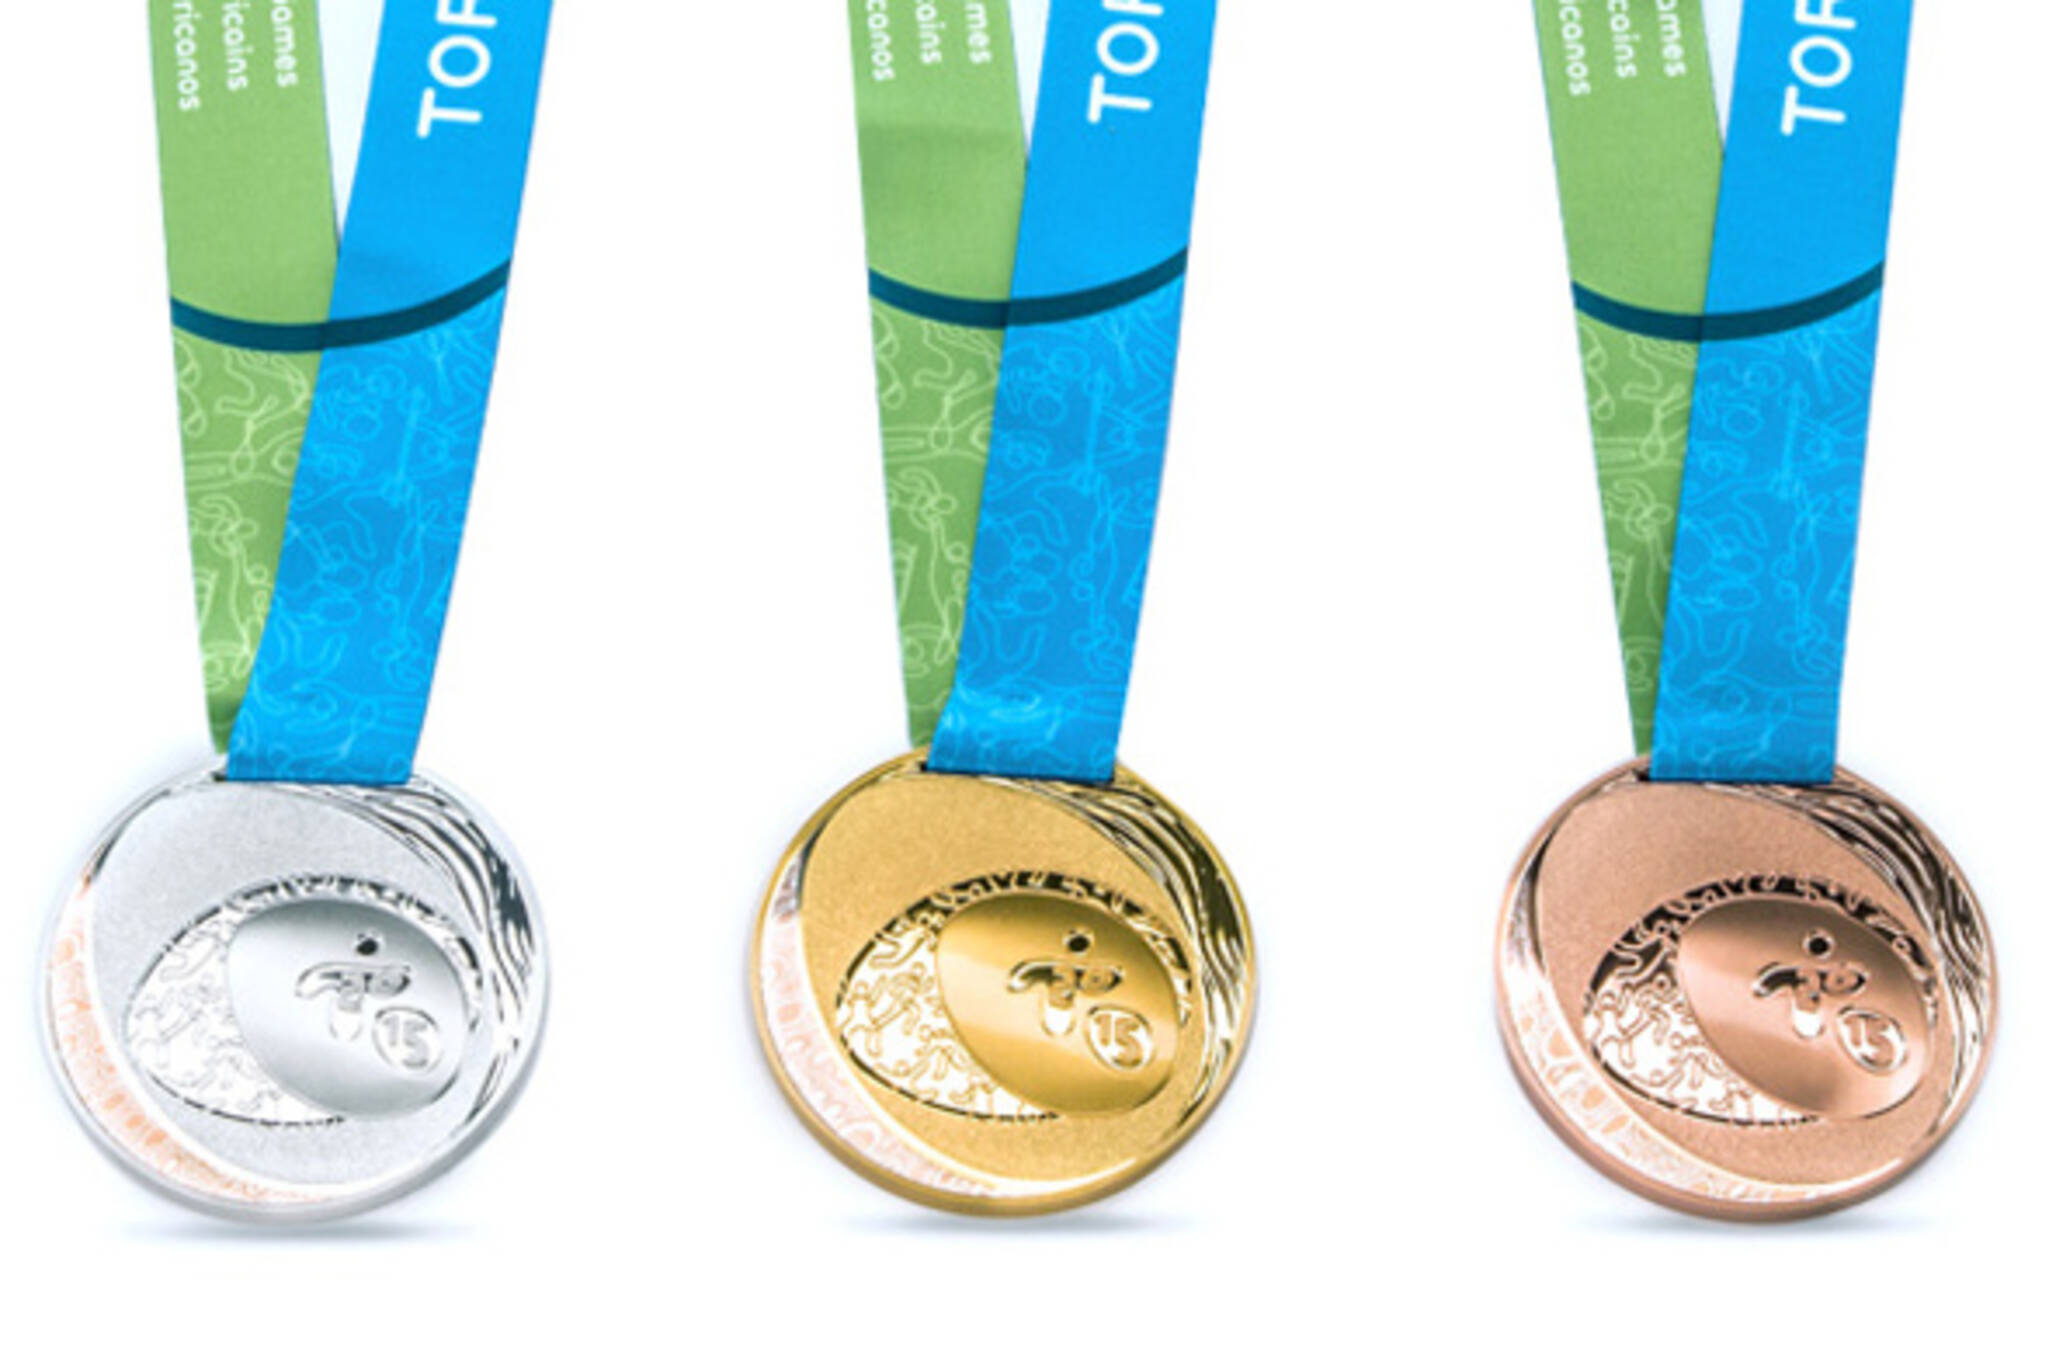 toronto pan am games 2015 medals